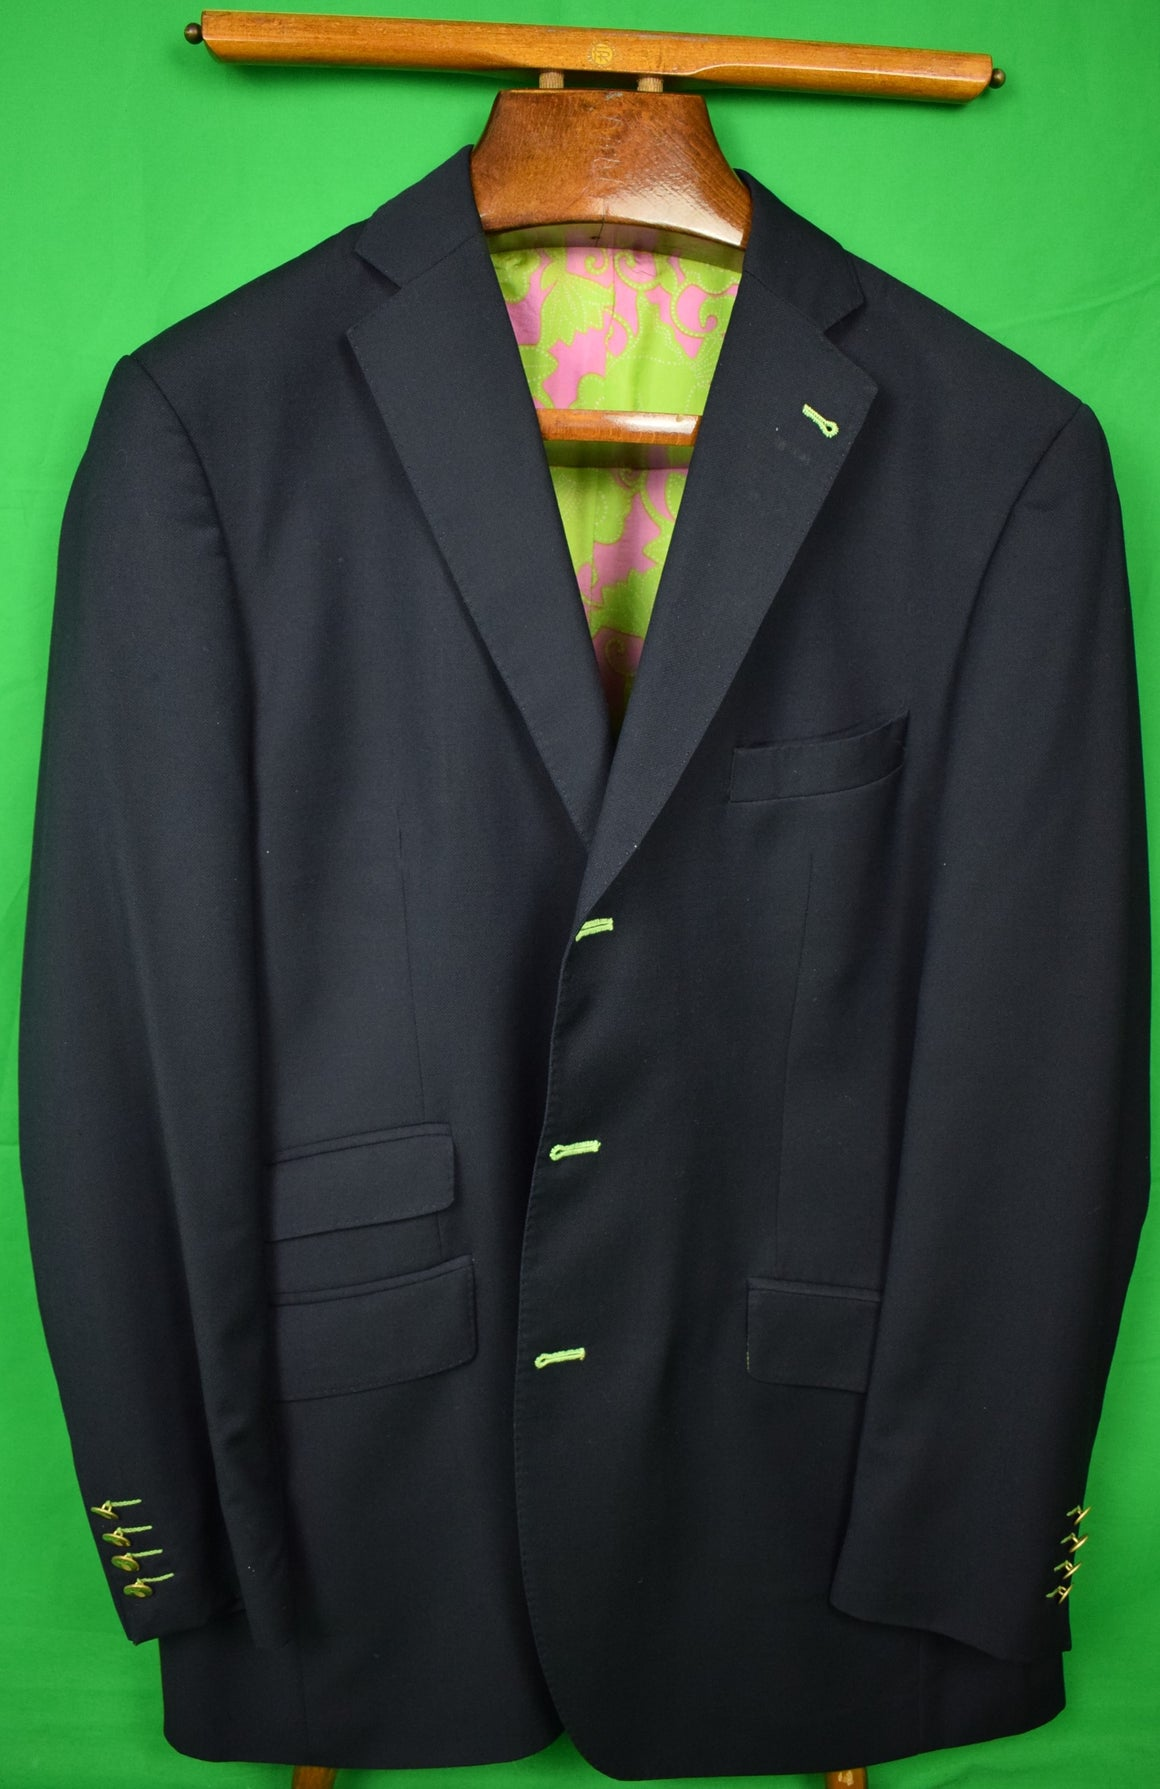 Lilly Pulitzer Hopsack Navy Wool Blazer Sz 46L (Sold!)